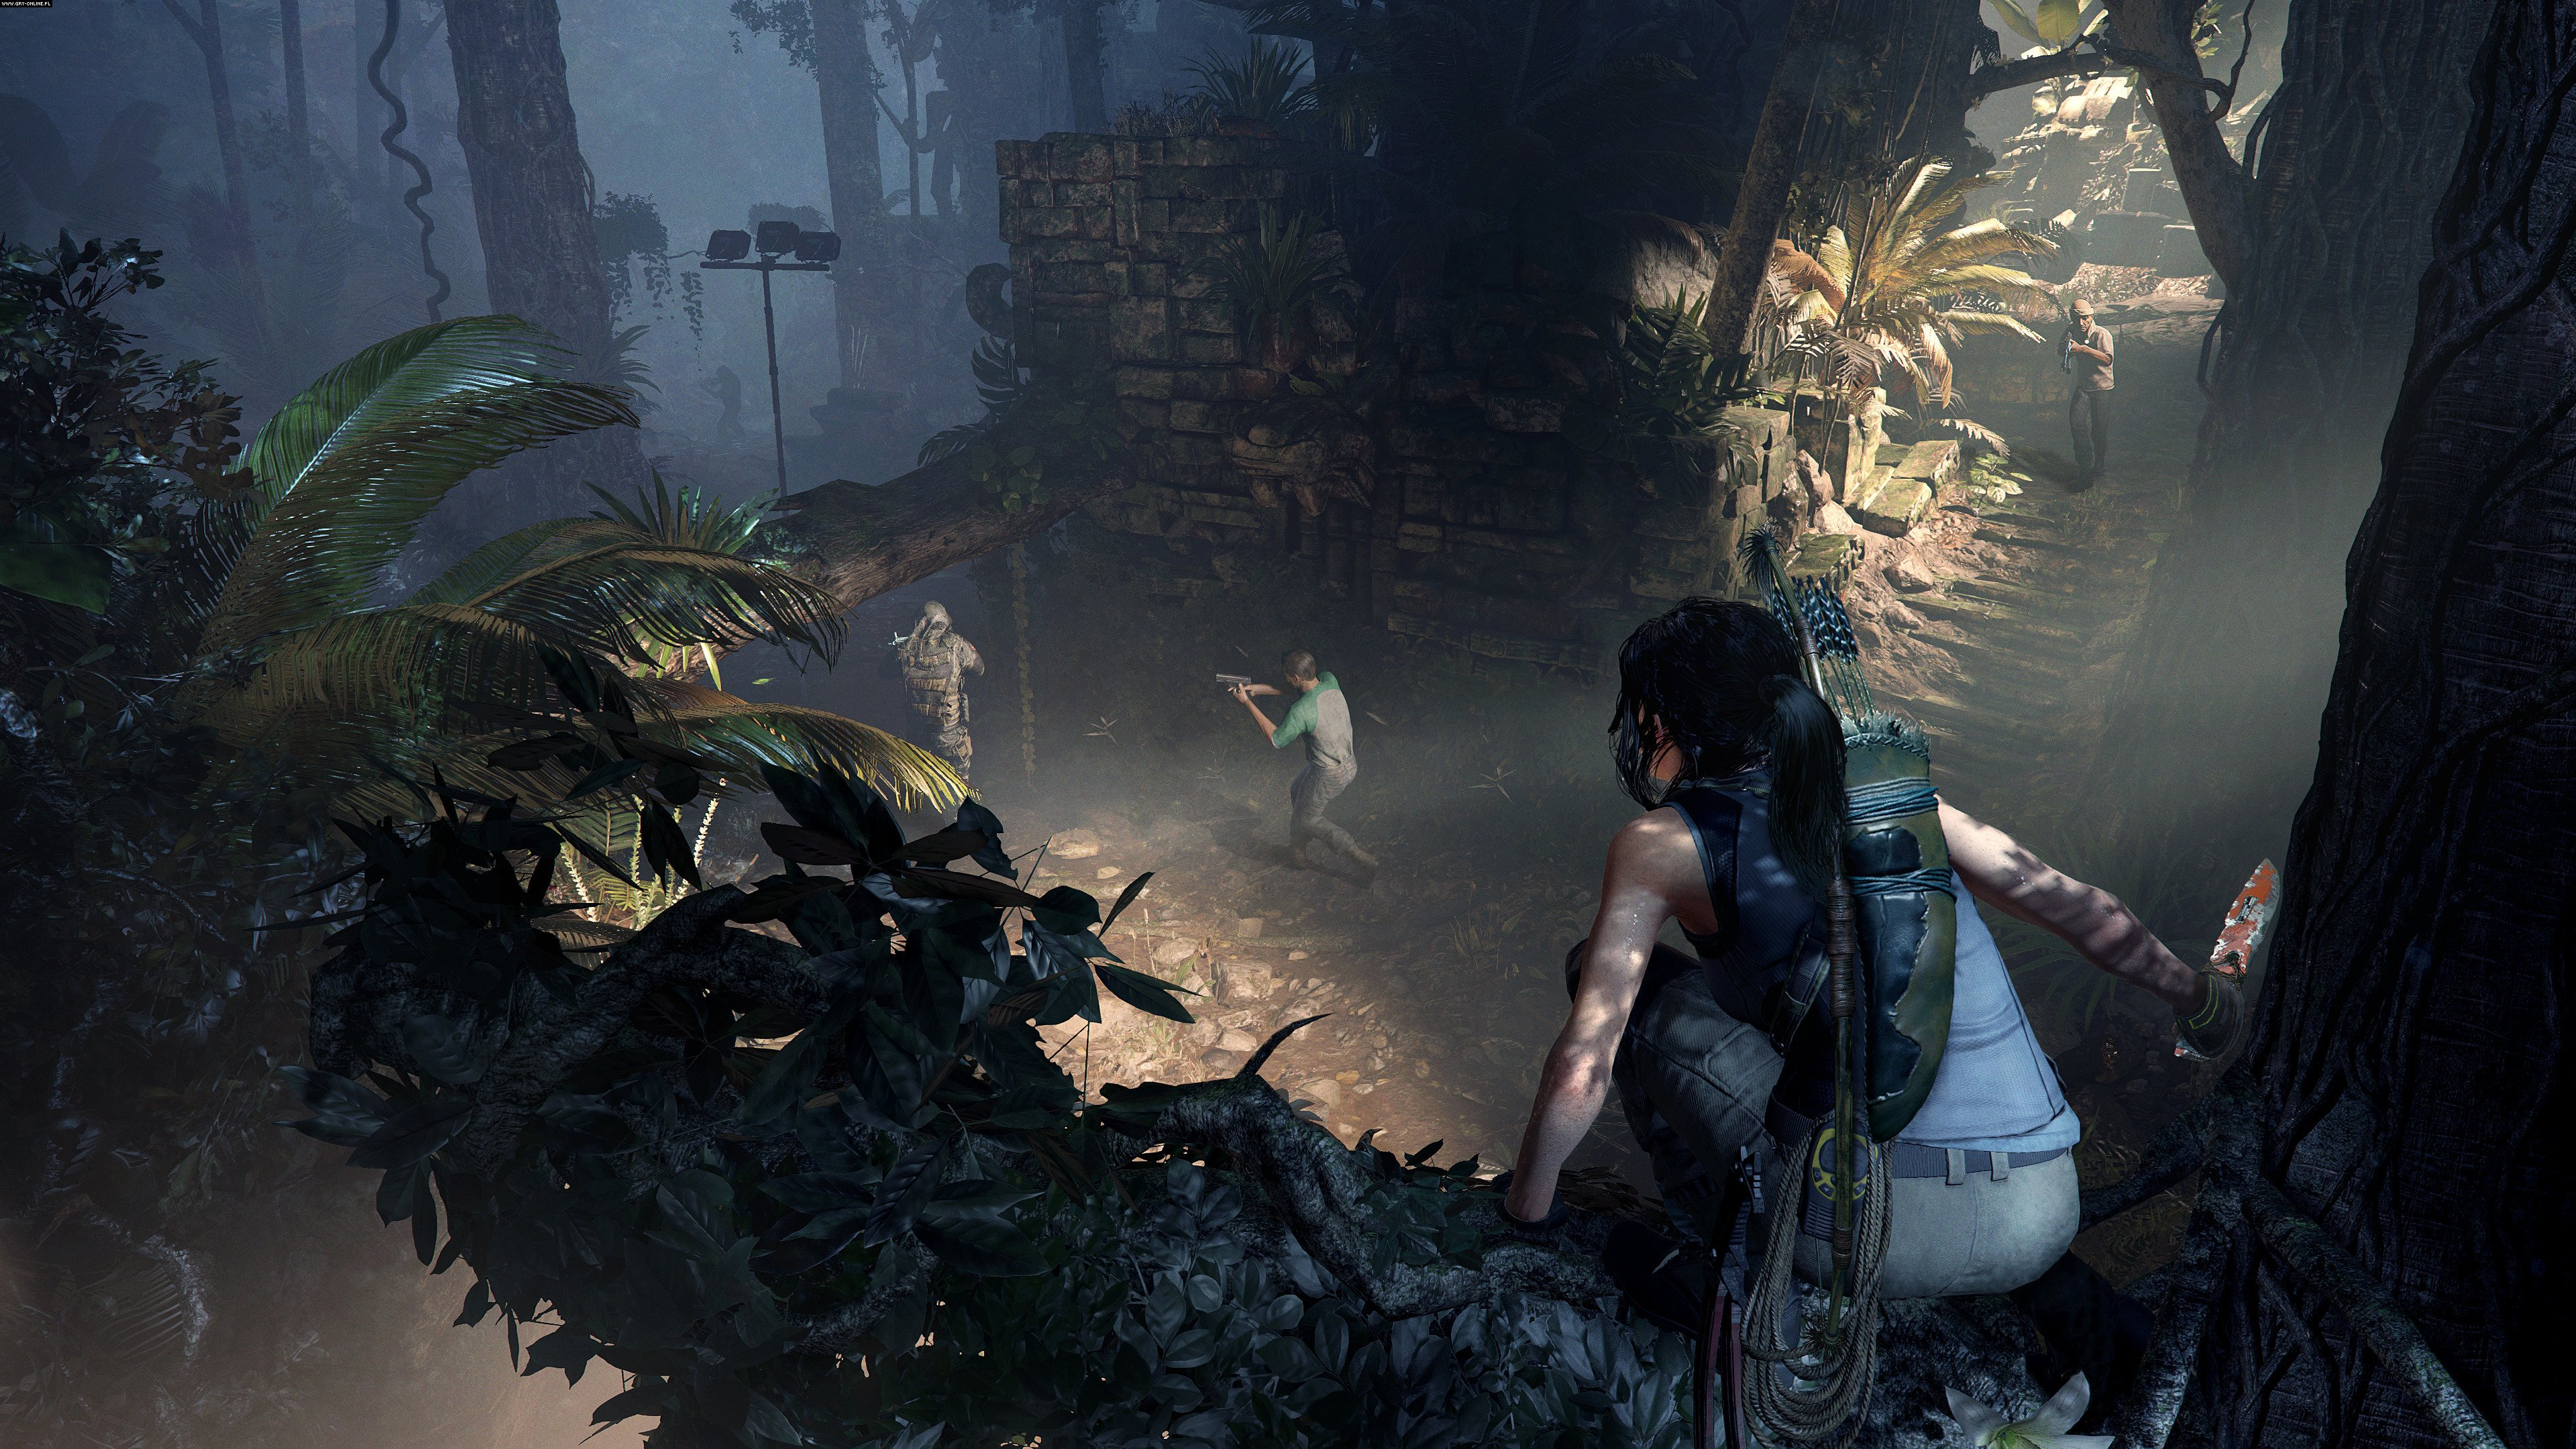 Shadow of the Tomb Raider PC, PS4, XONE Gry Screen 33/52, Eidos Montreal, Square-Enix / Eidos